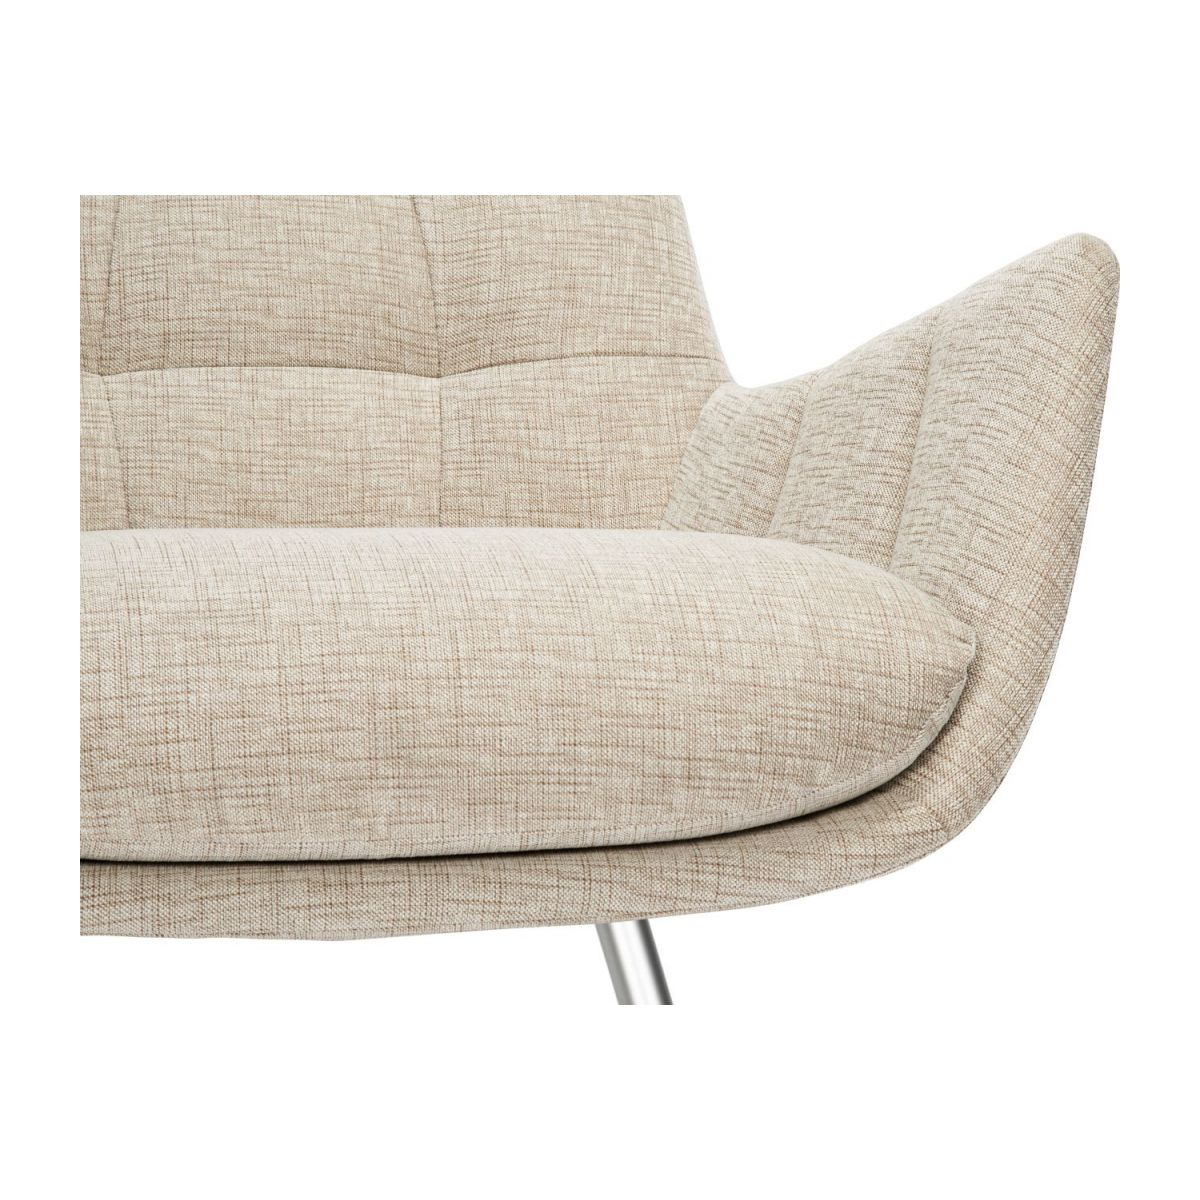 Armchair in Ancio fabric, nature with matt metal legs n°7